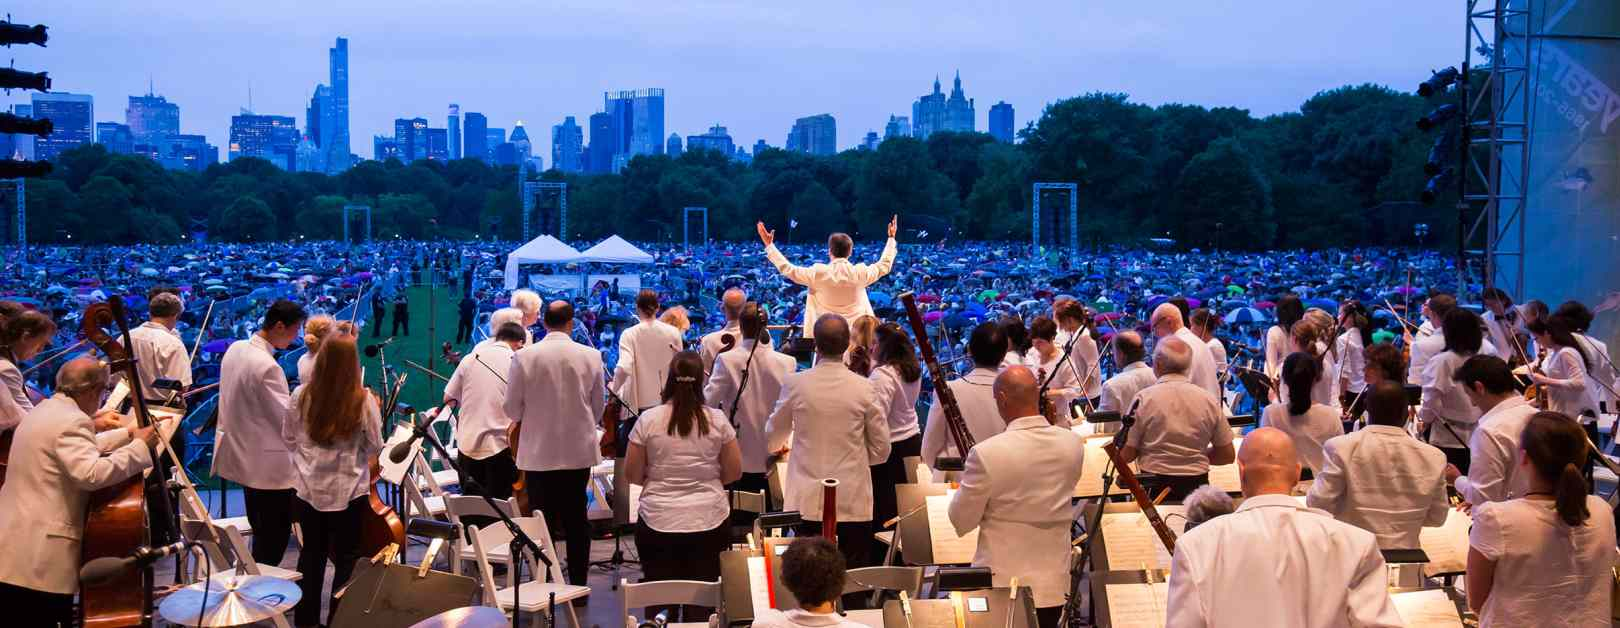 new york philharmonic concerts in the parks 2016 - central park june 16